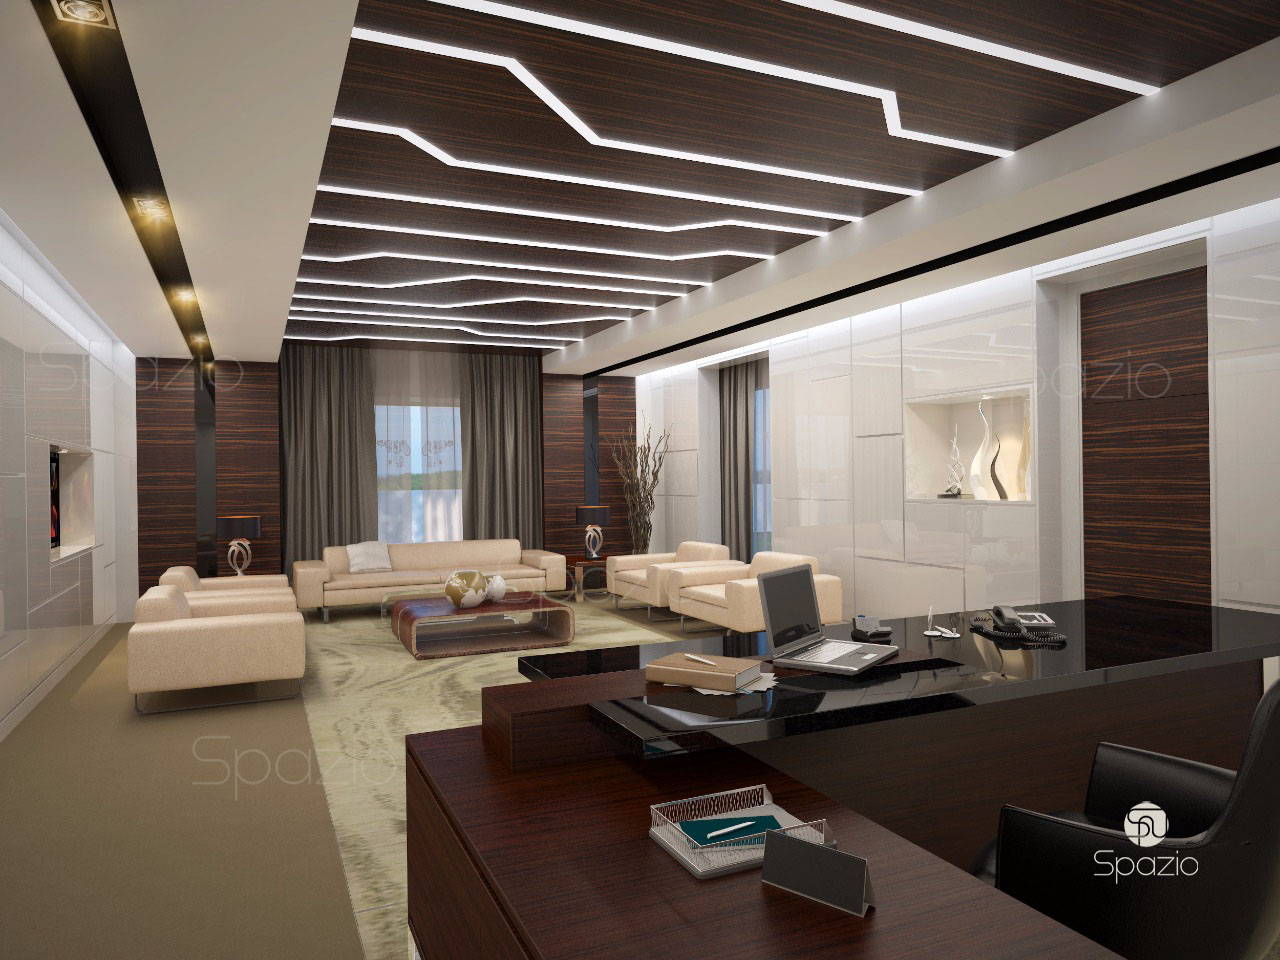 Office interior design company in dubai spazio for Luxury office interior